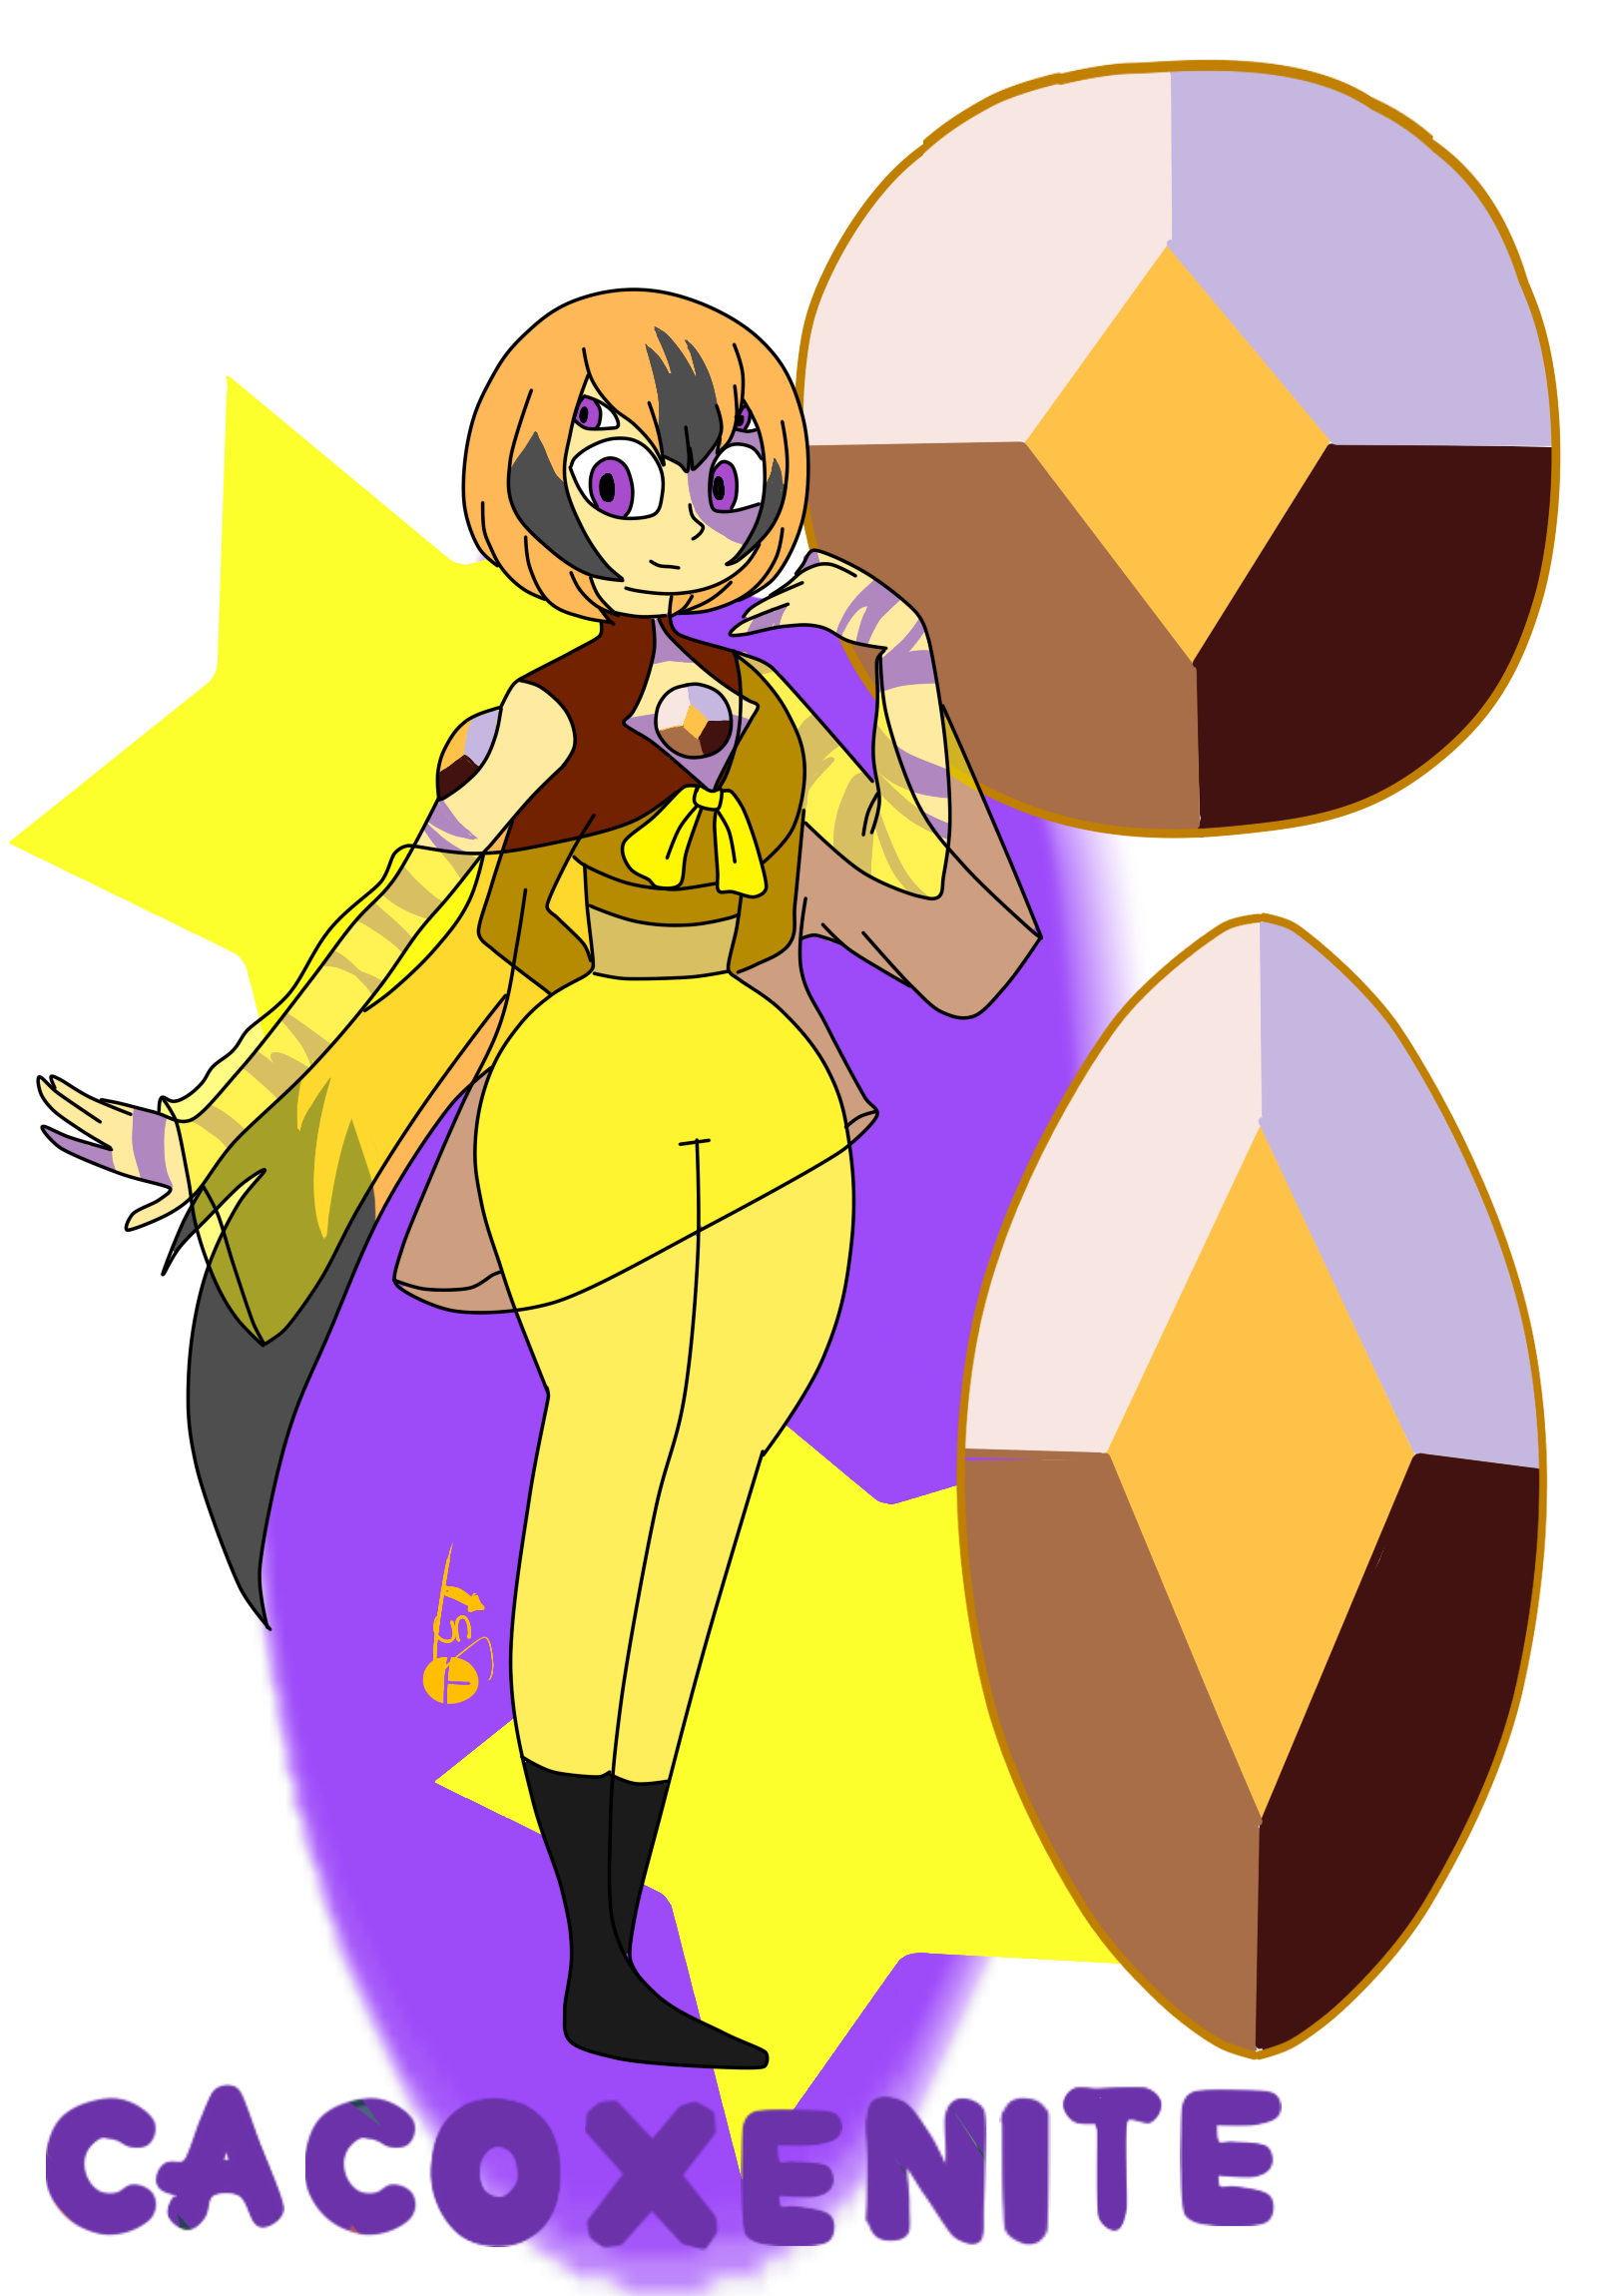 Gemsona Fusion Cacoxenite Fanfiction Crystalia - Capítulo 25